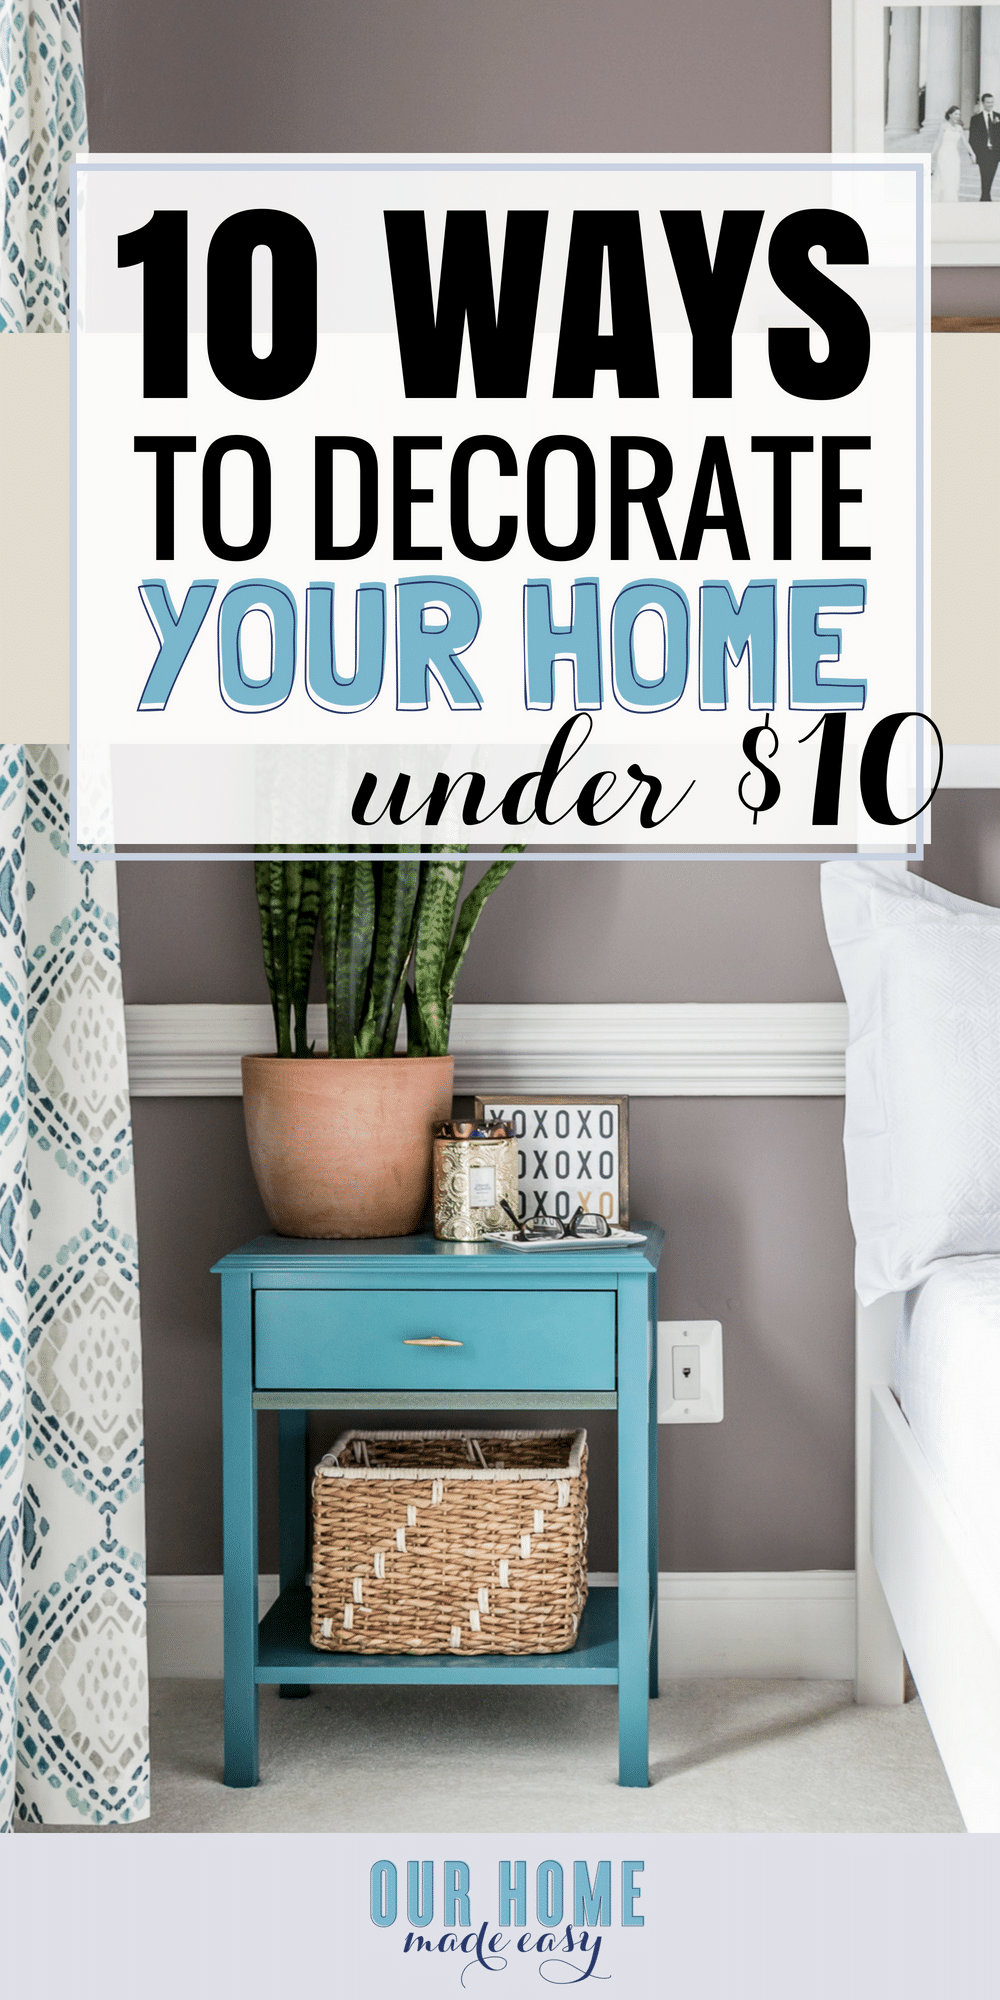 Affordable Home Decor For Under 10 Our Home Made Easy Diy Home Repair Home Diy Decorating Your Home